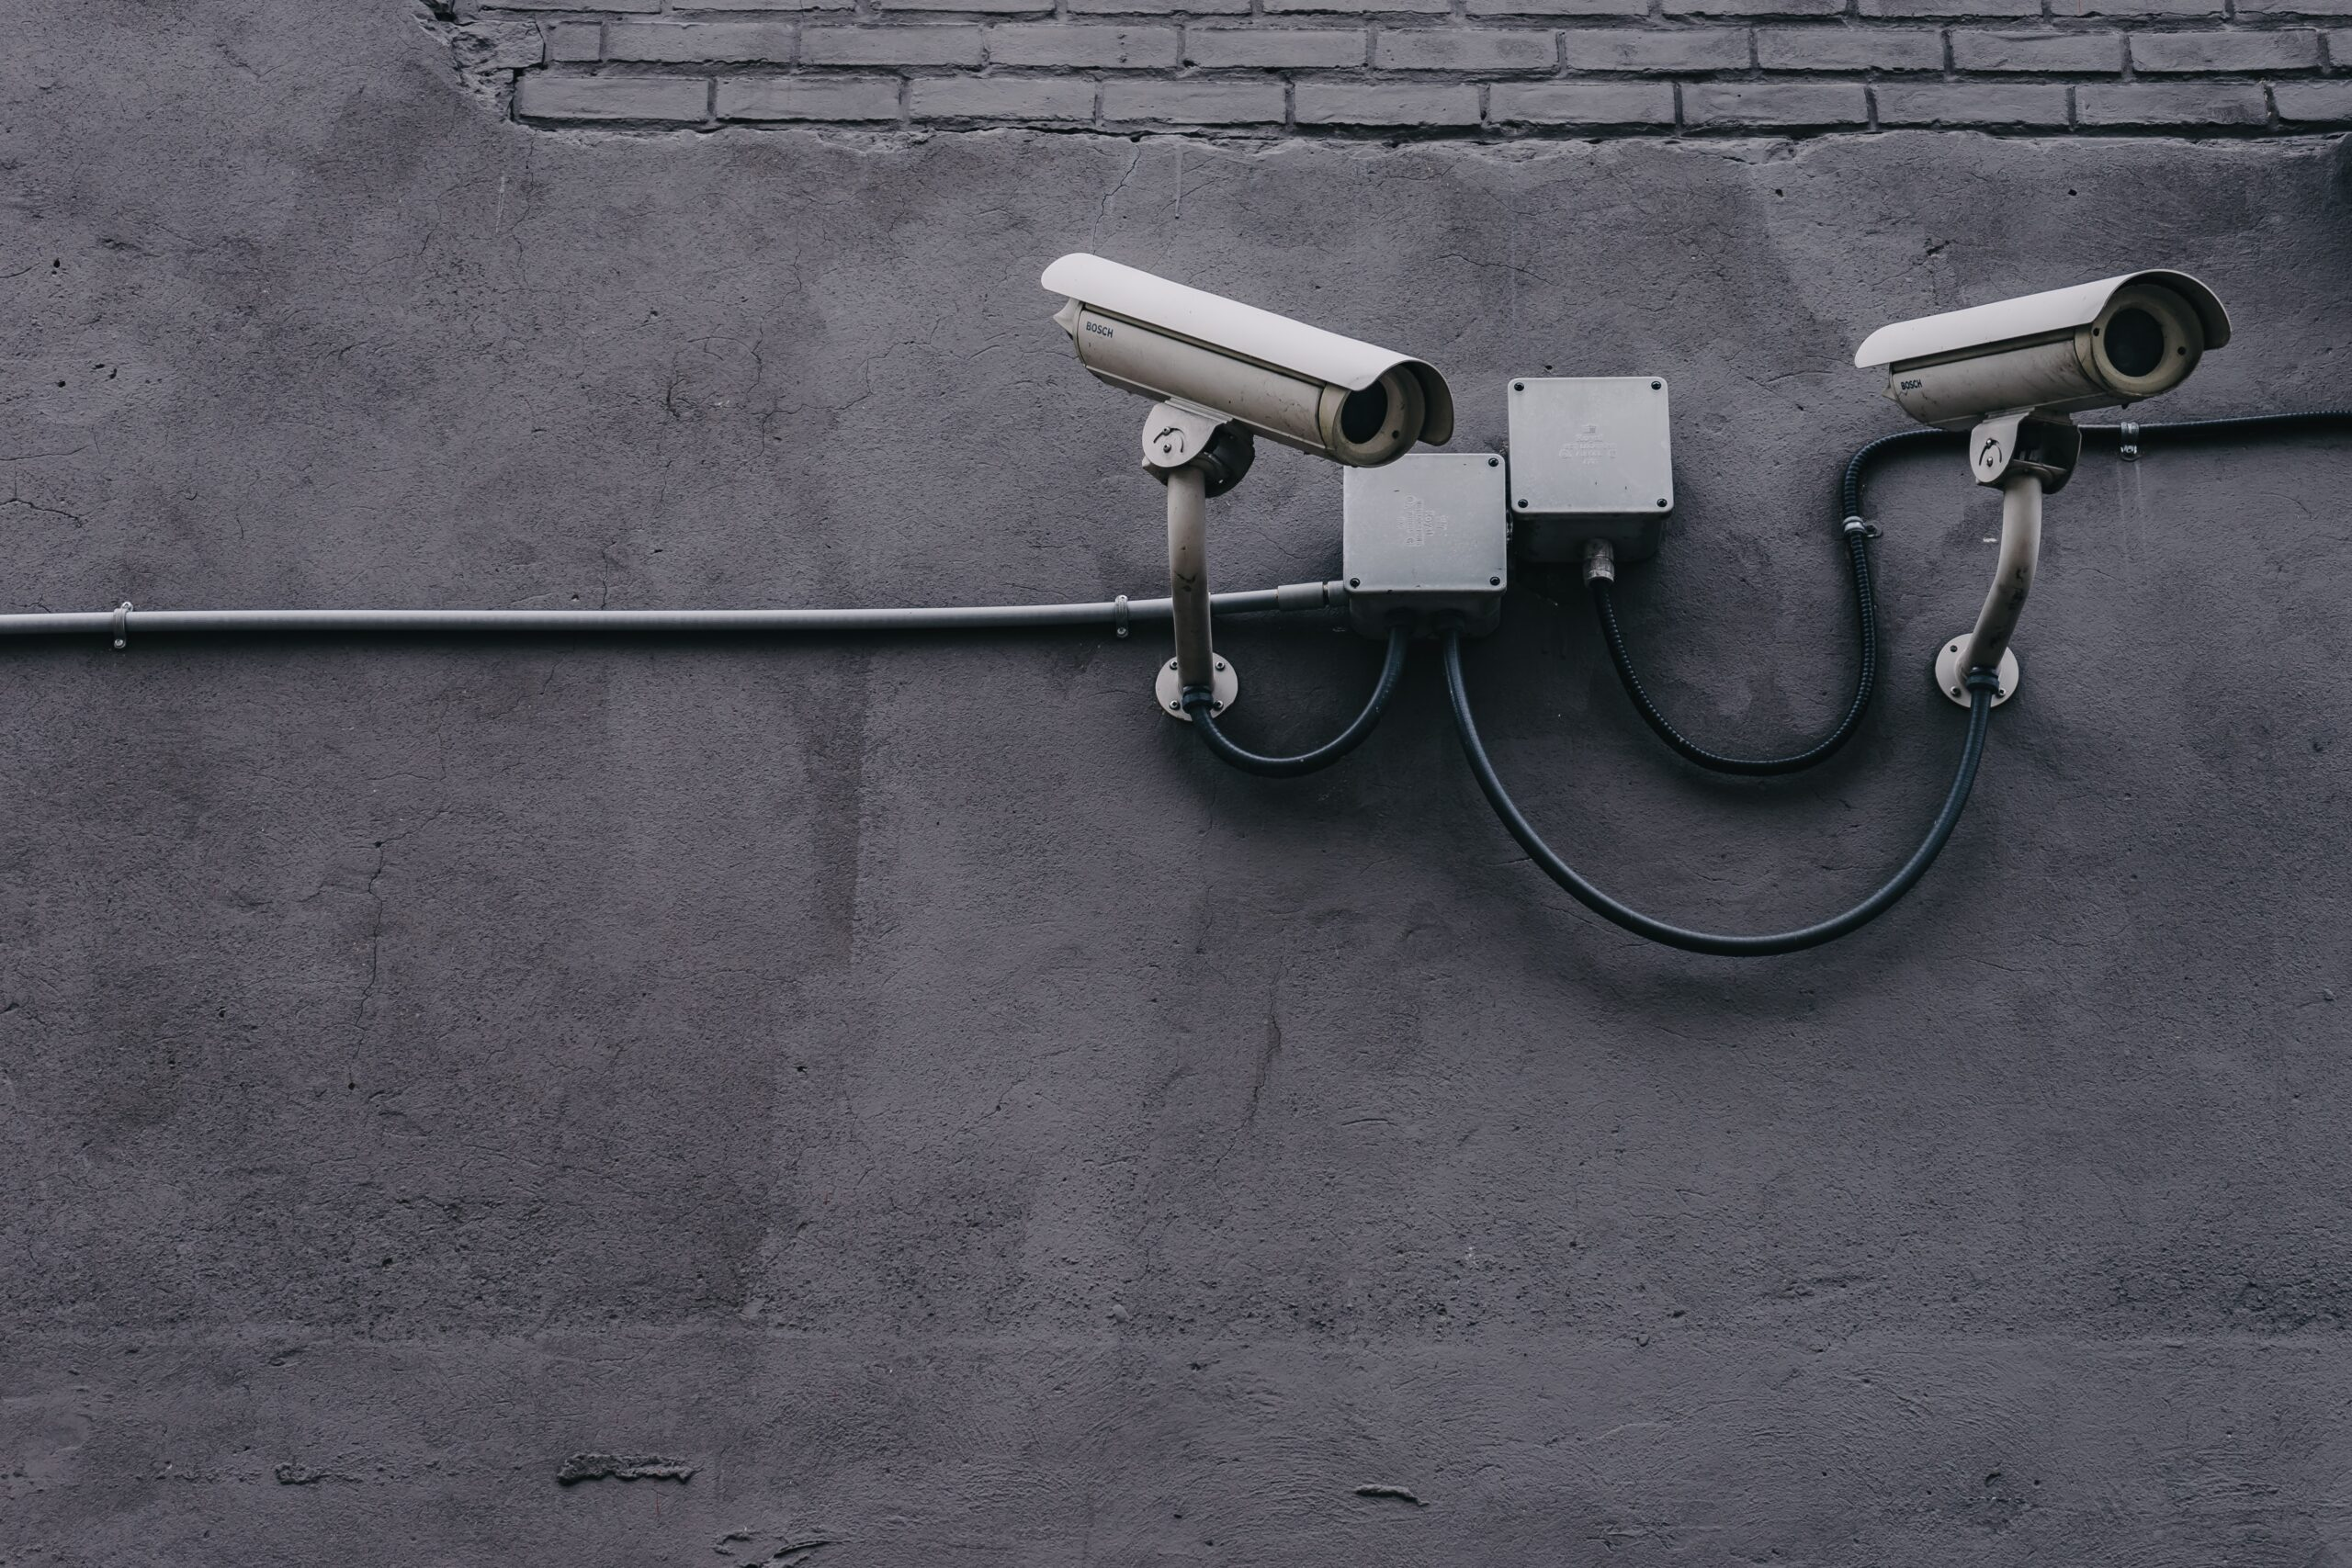 Image of Security Cameras